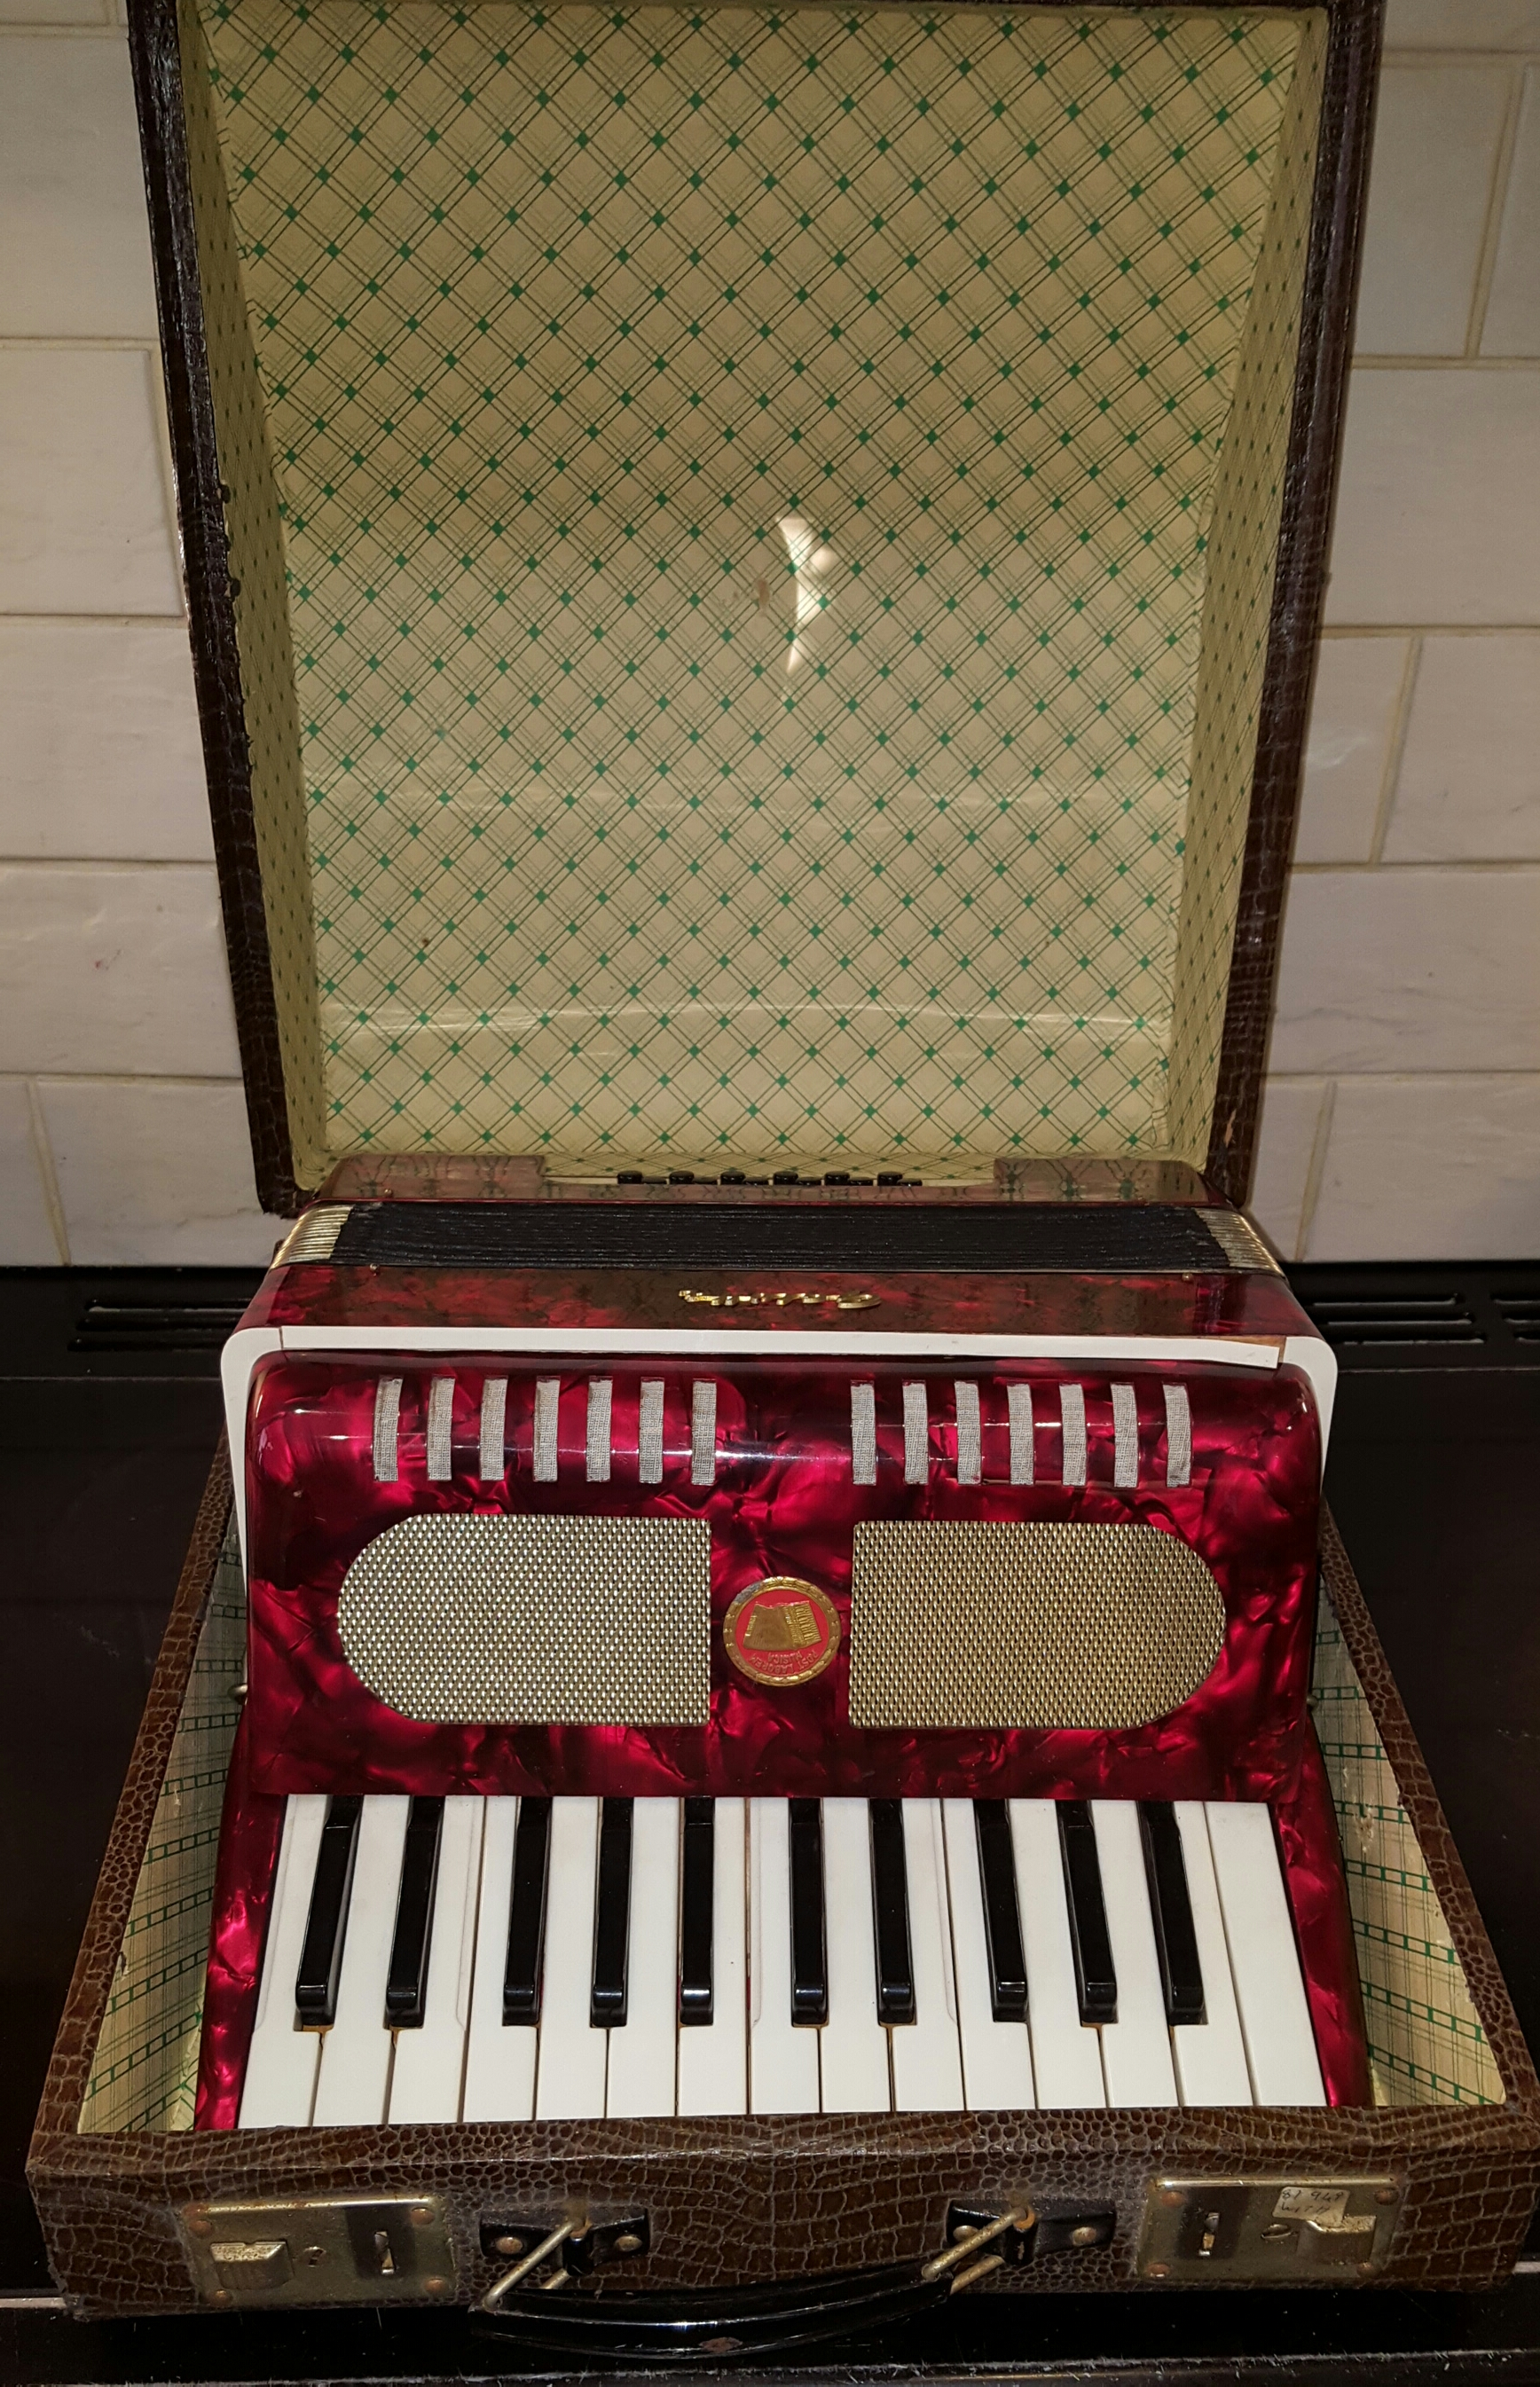 Lot 36 - Piano Accordion